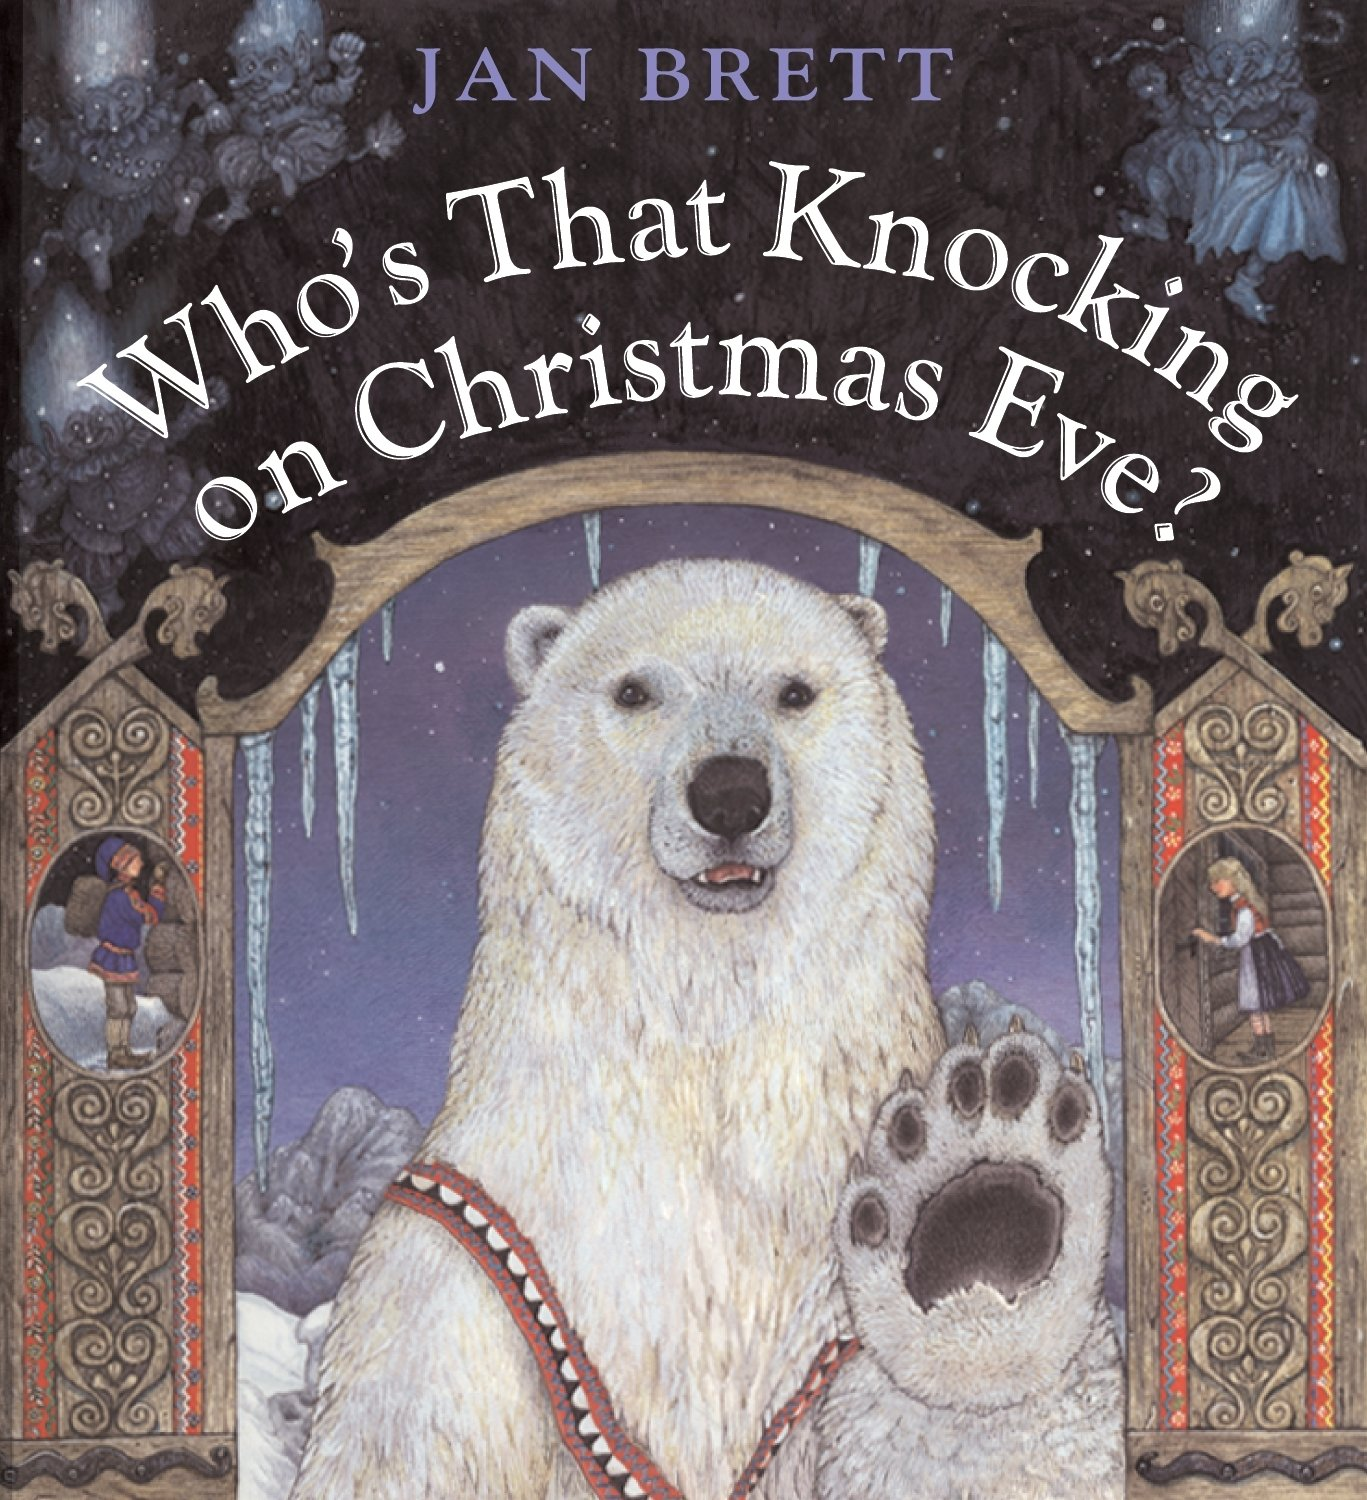 Who's That Knocking on Christmas Eve? by Putnam Juvenile (Image #2)